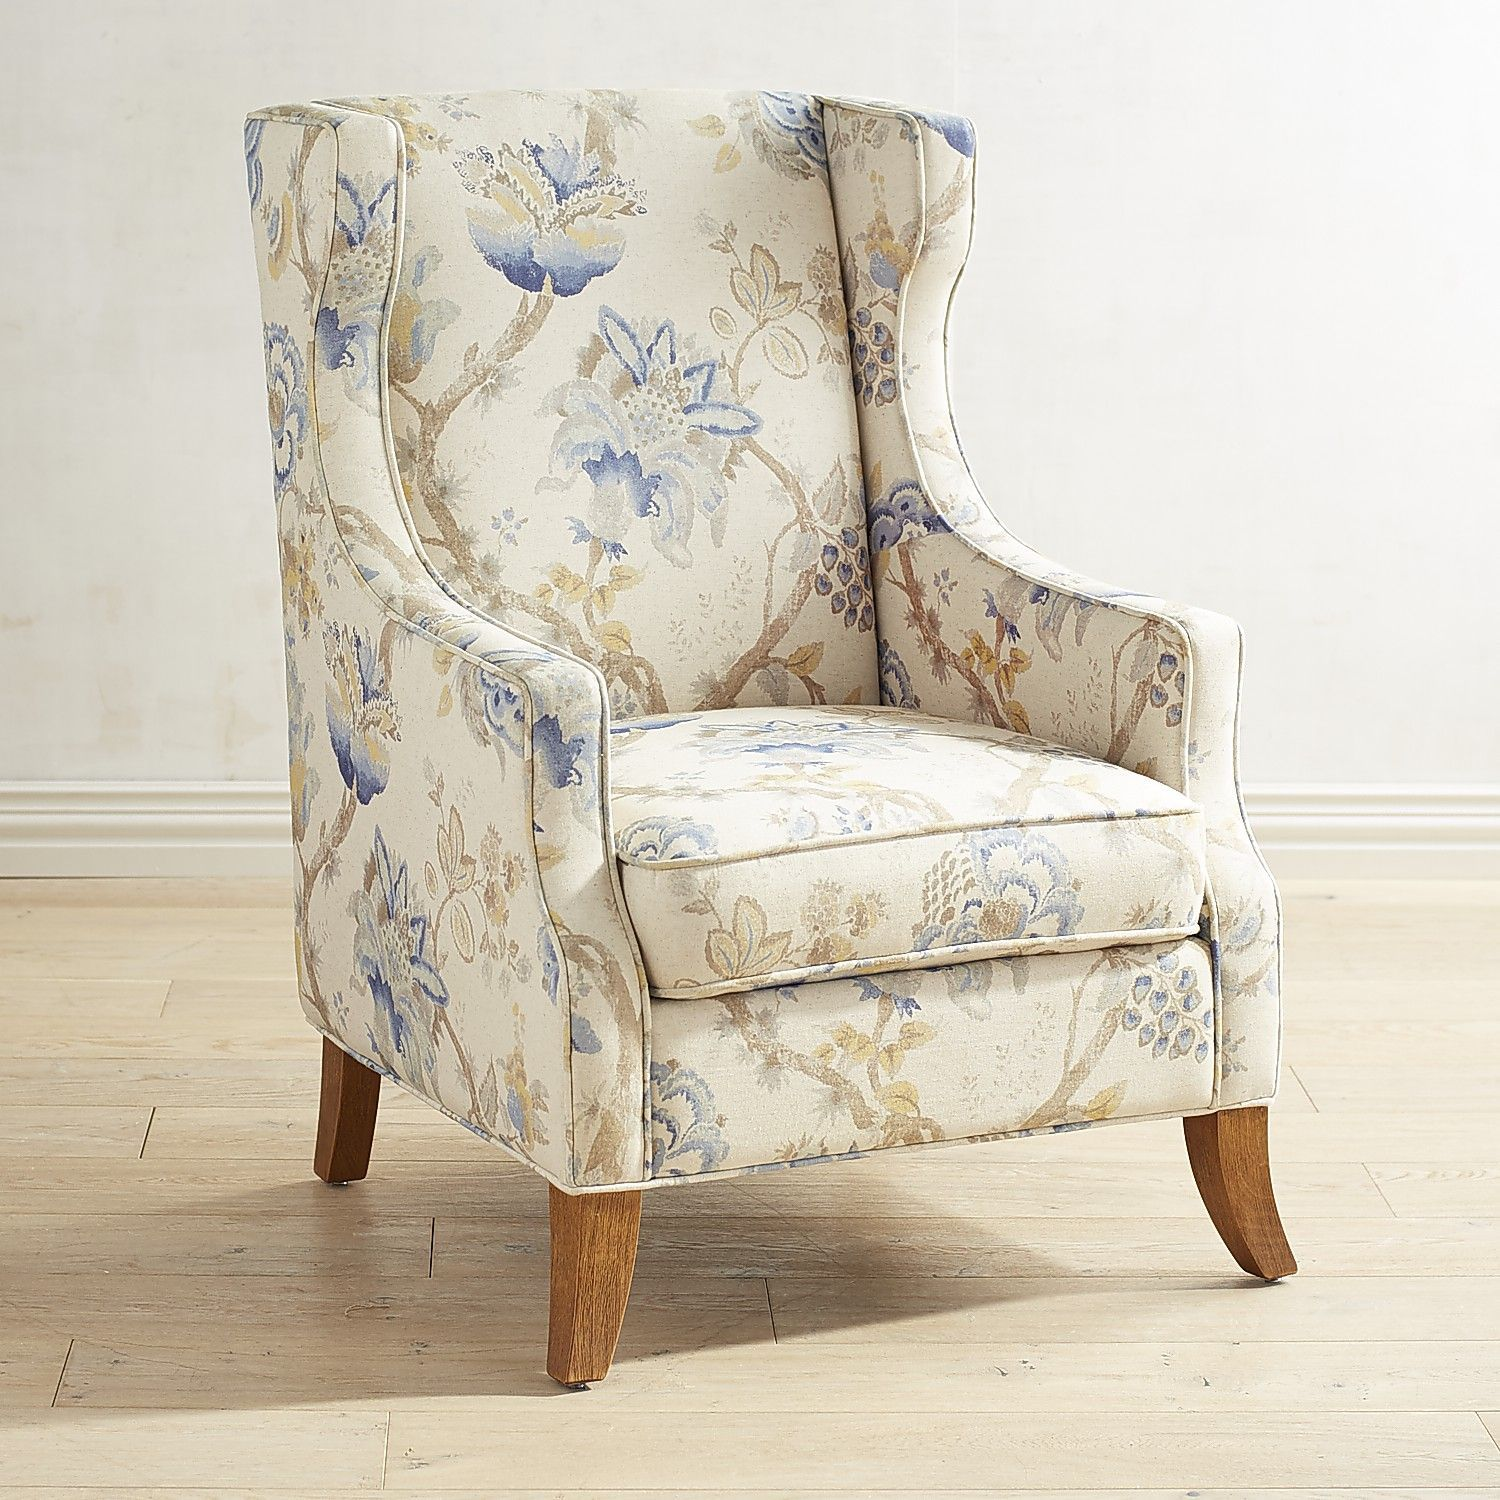 Floral Chairs Alec Blue Floral Wing Chair Products Wing Chair